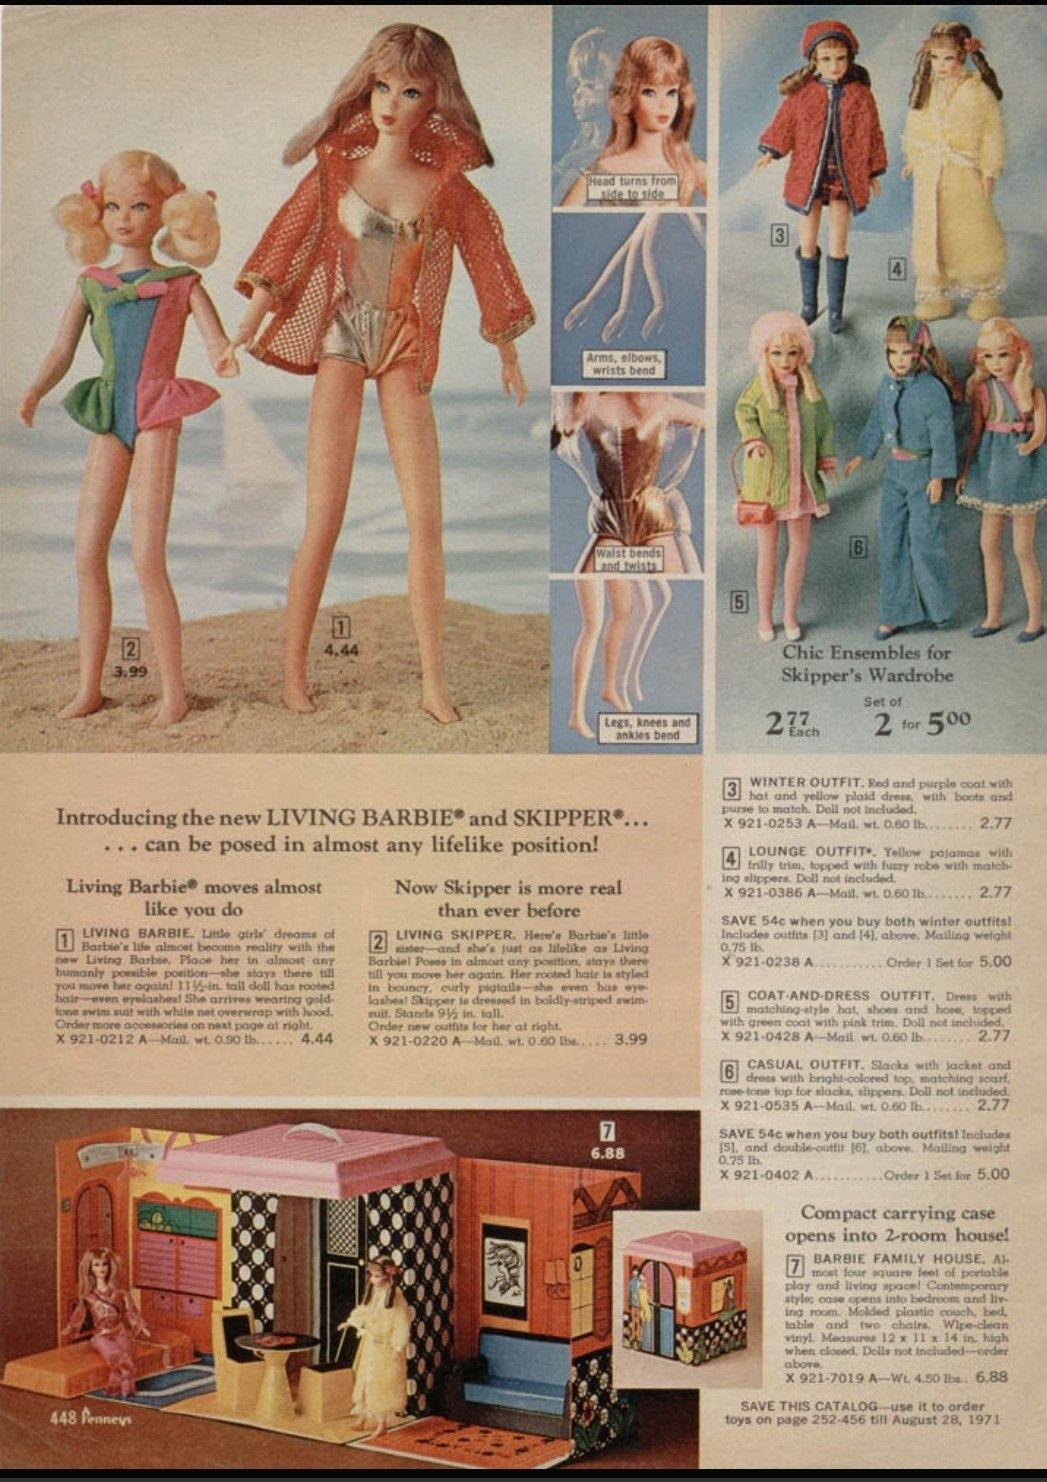 Jcpenney Christmas Catalog 2019 1970 JCPenney Christmas catalog page 448 | Retro in 2019 | Barbie